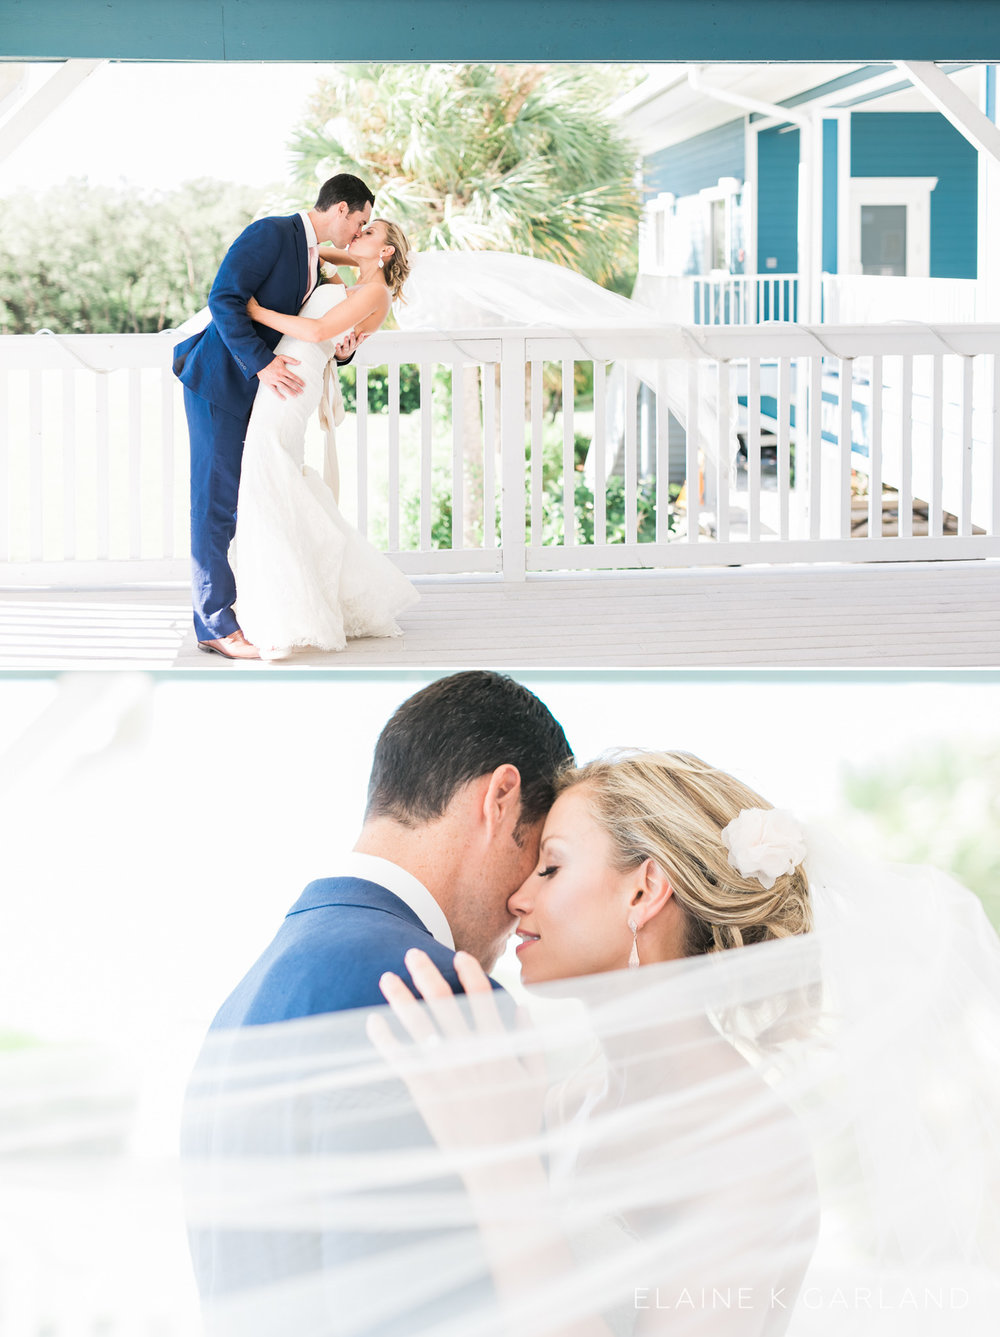 nautical-navy-blush-tampa-fl-wedding-29.jpg